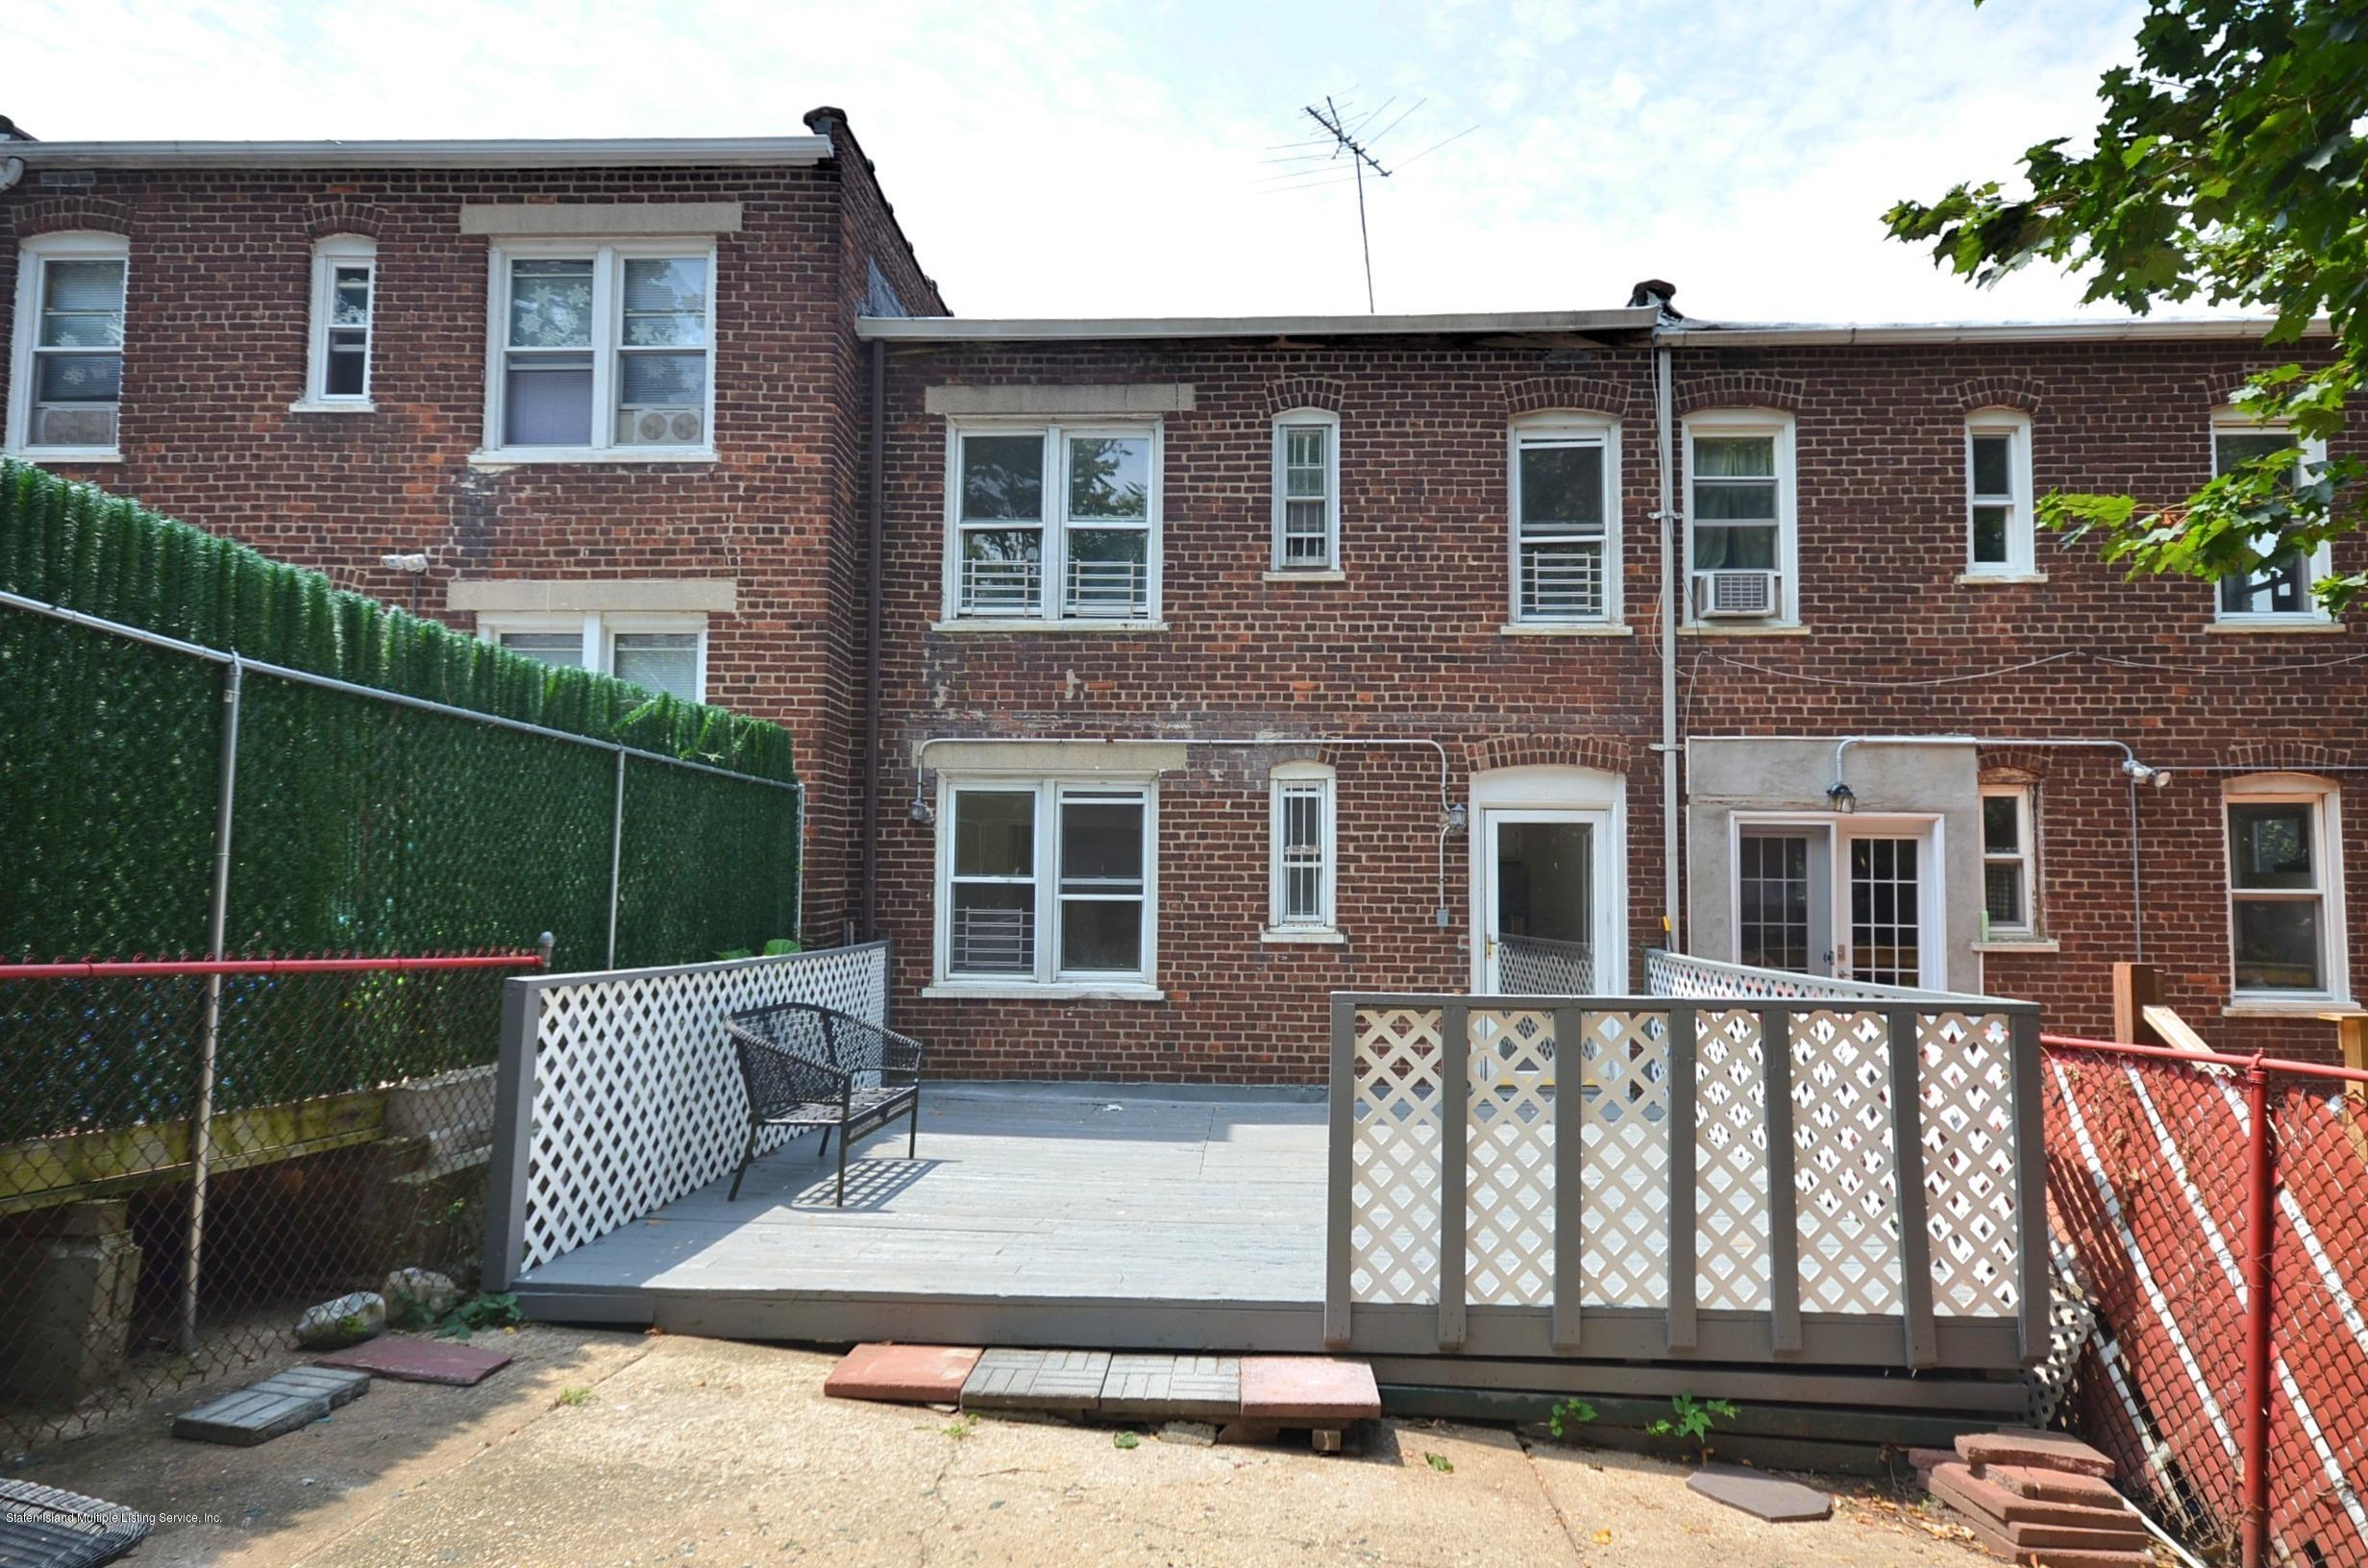 Single Family - Attached 113 Pendleton Place  Staten Island, NY 10301, MLS-1131171-15